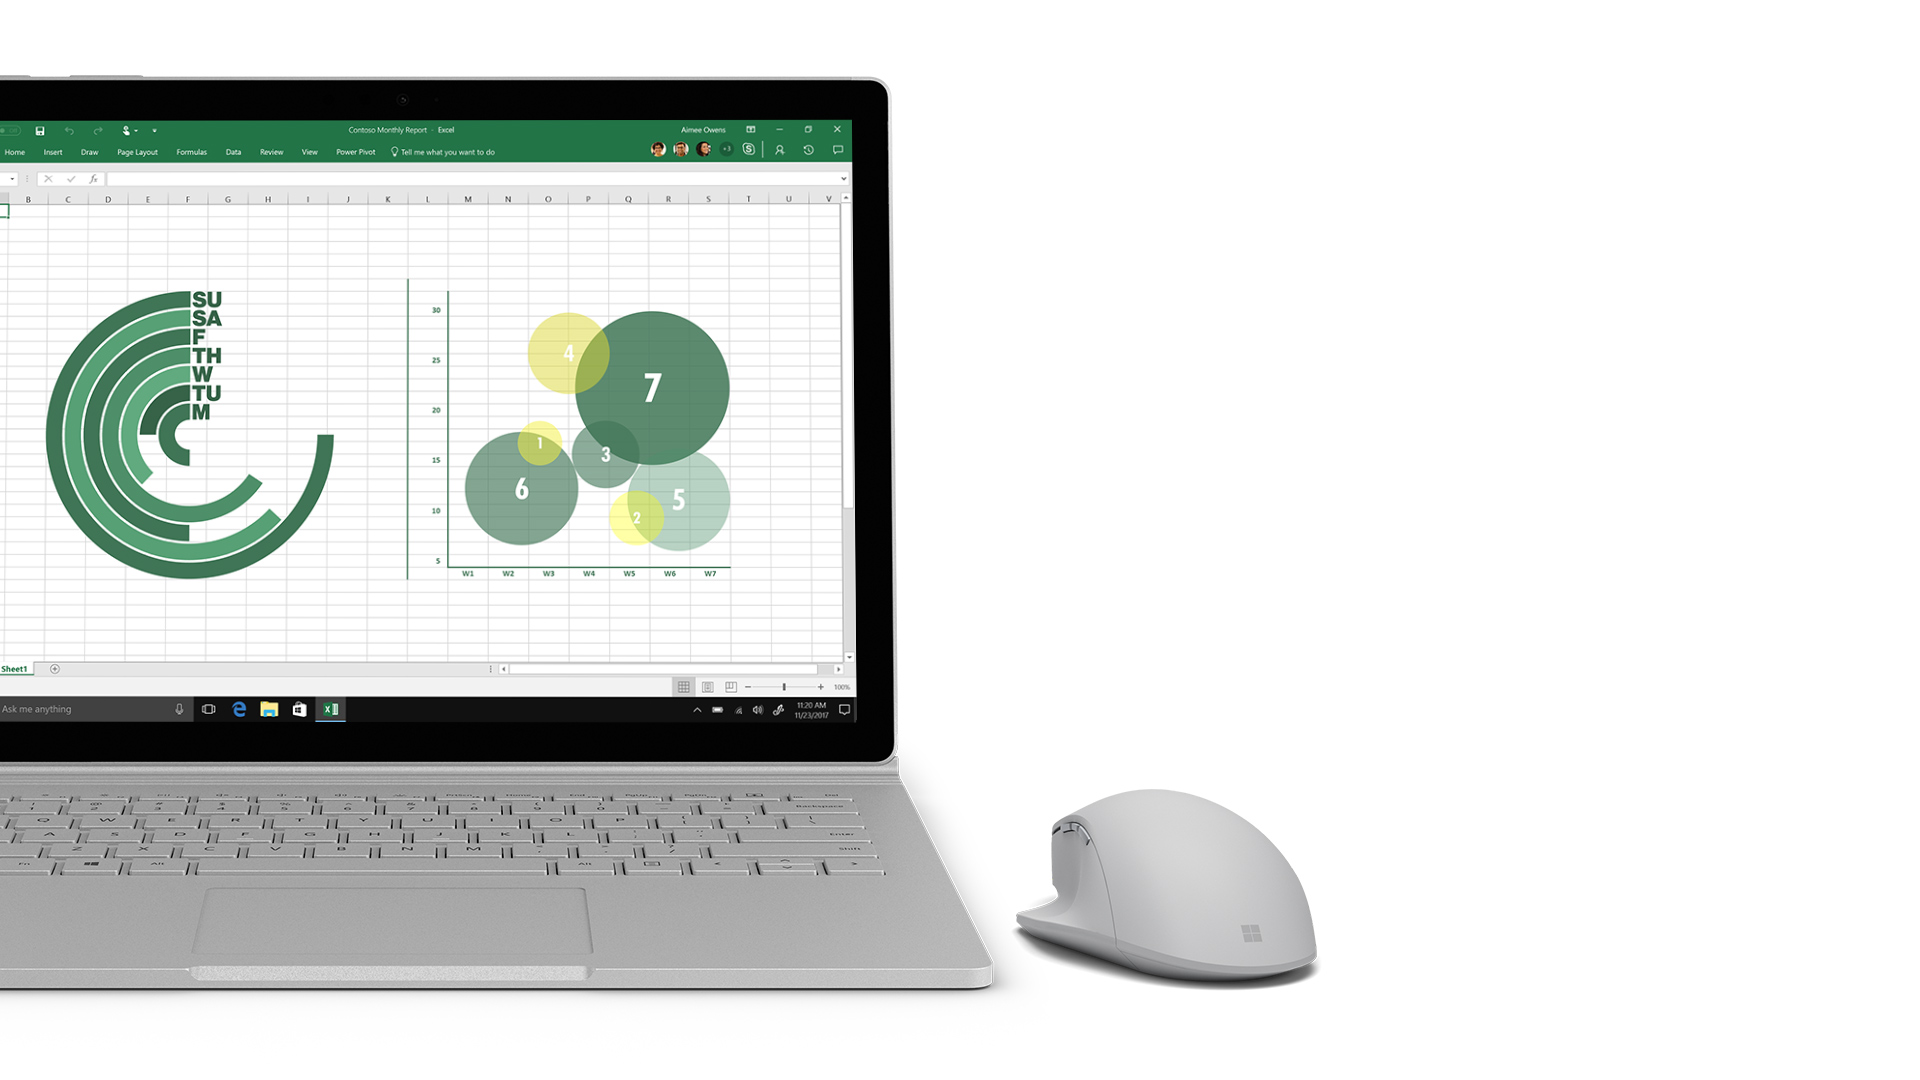 Surface mit Excel-Screenshot.